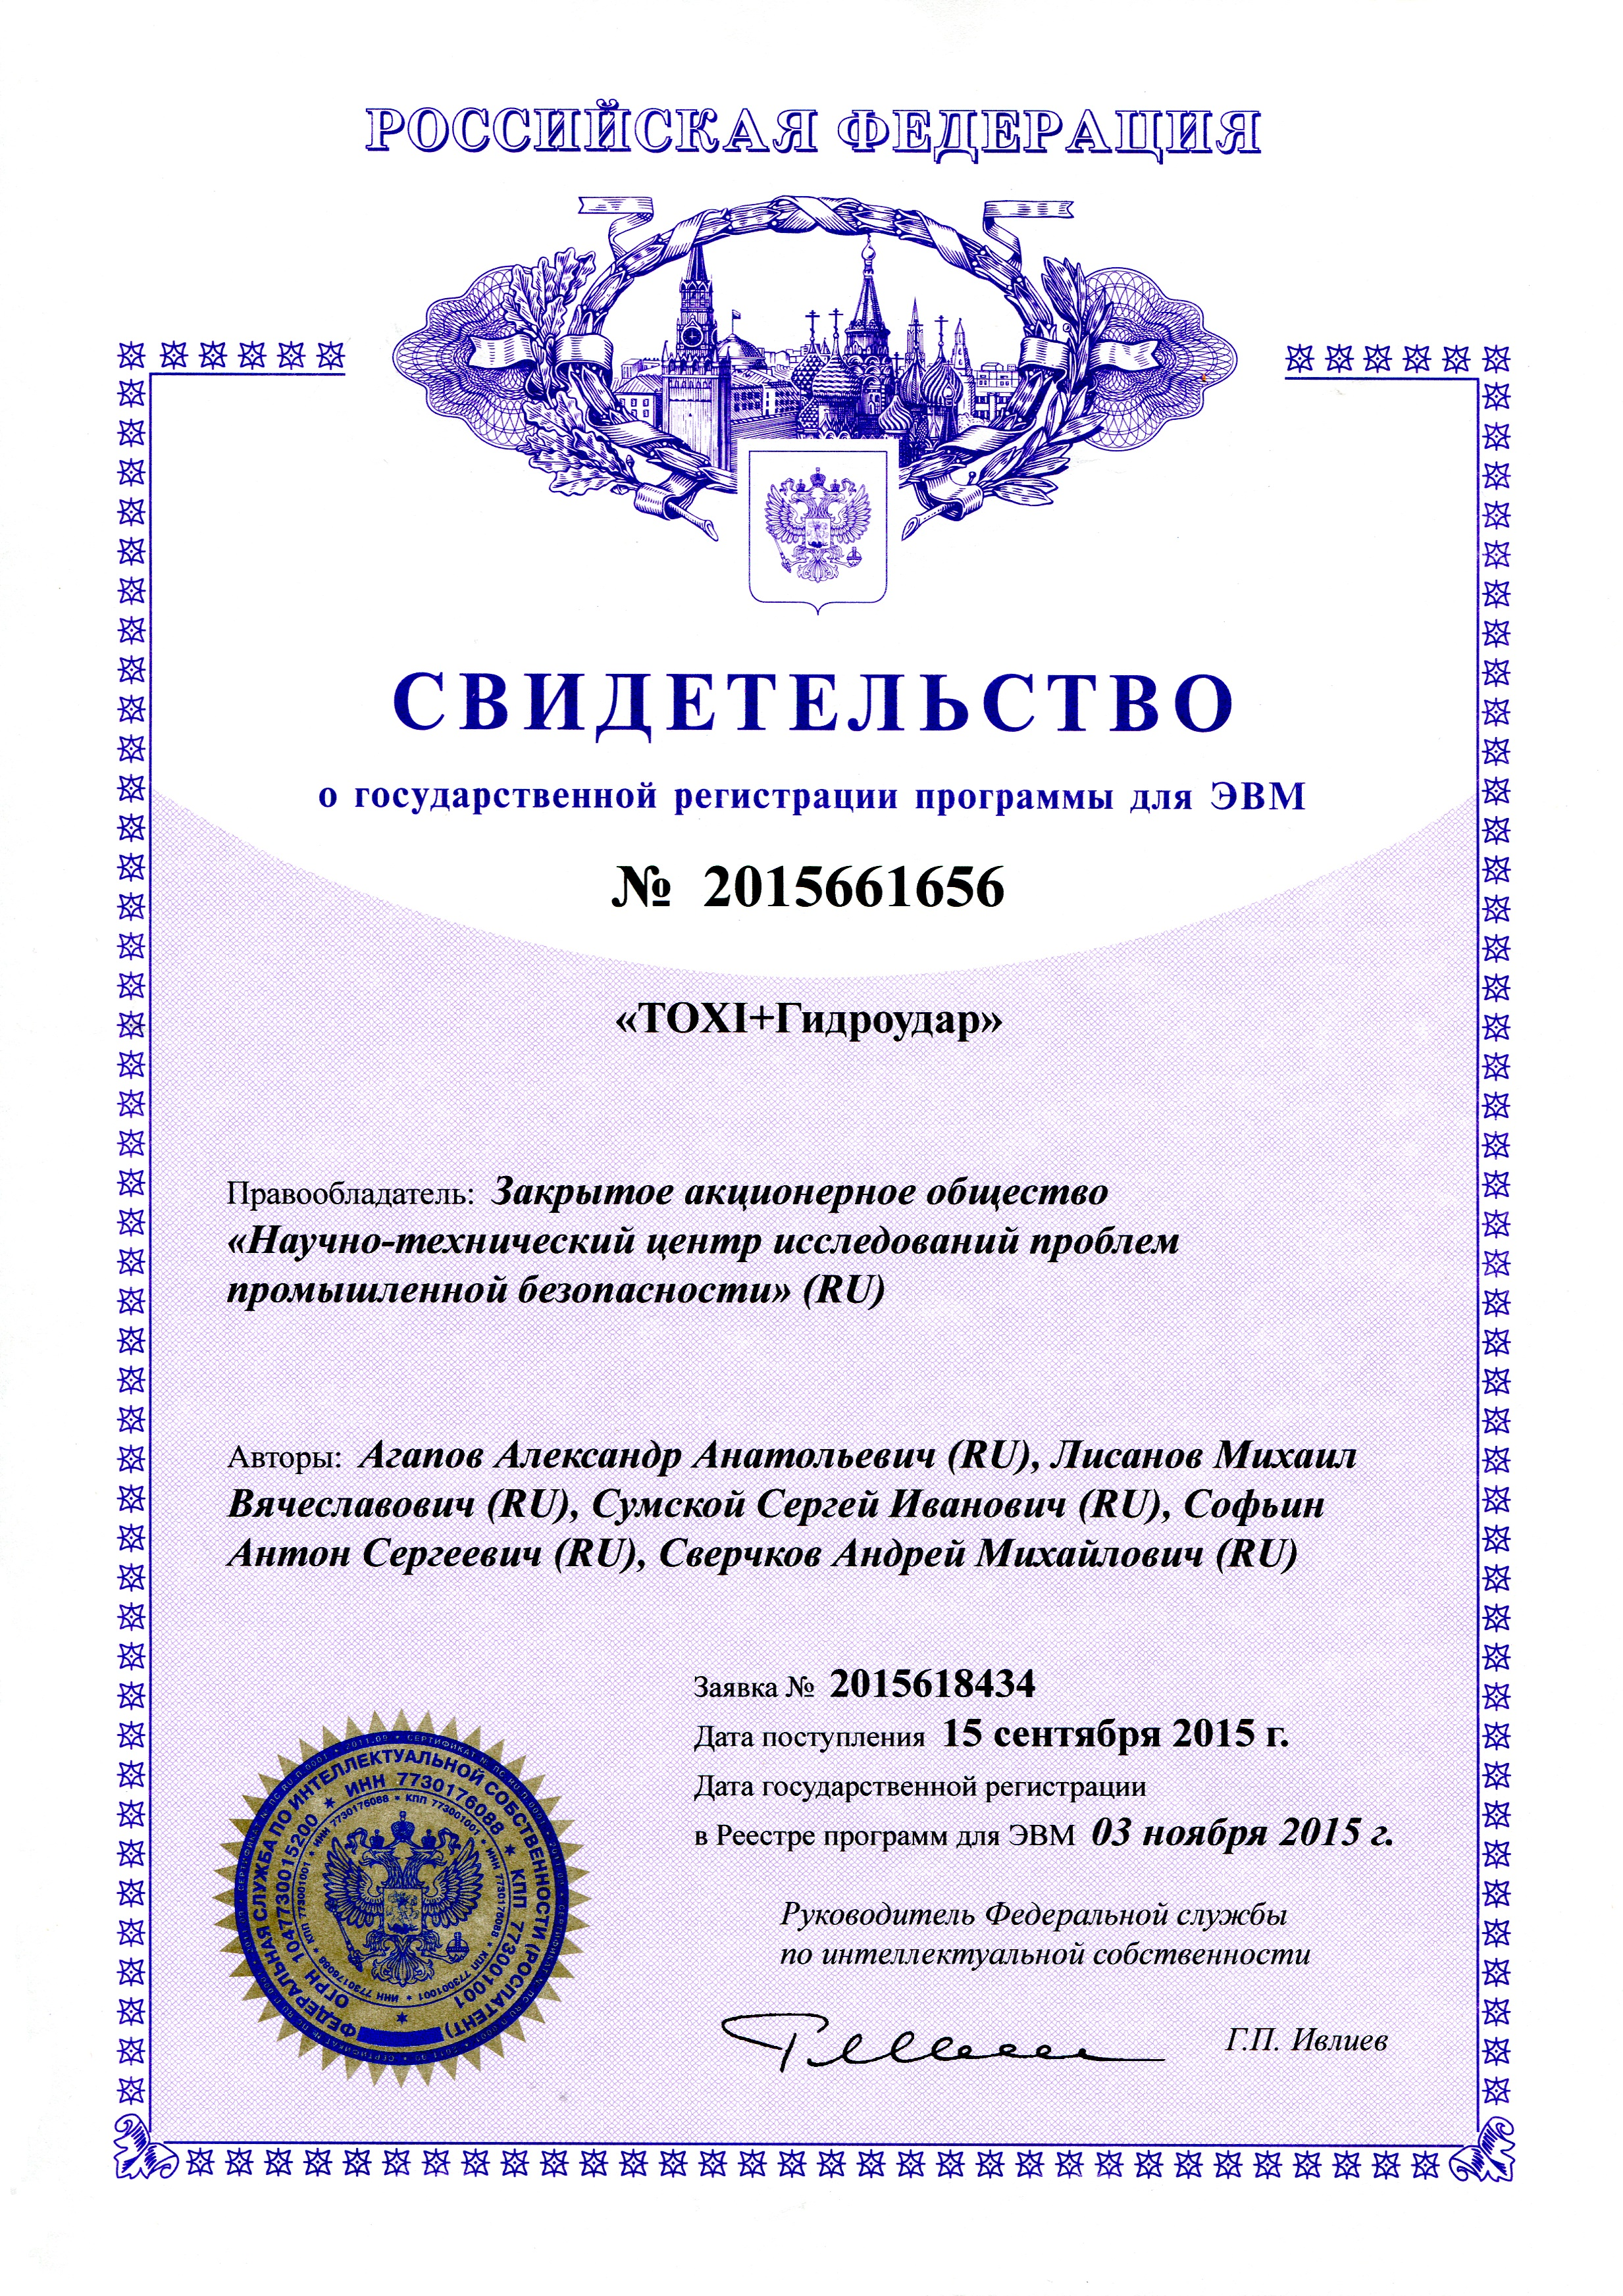 TOXI, TOXI software tool + Hydroblow certificate, attestation